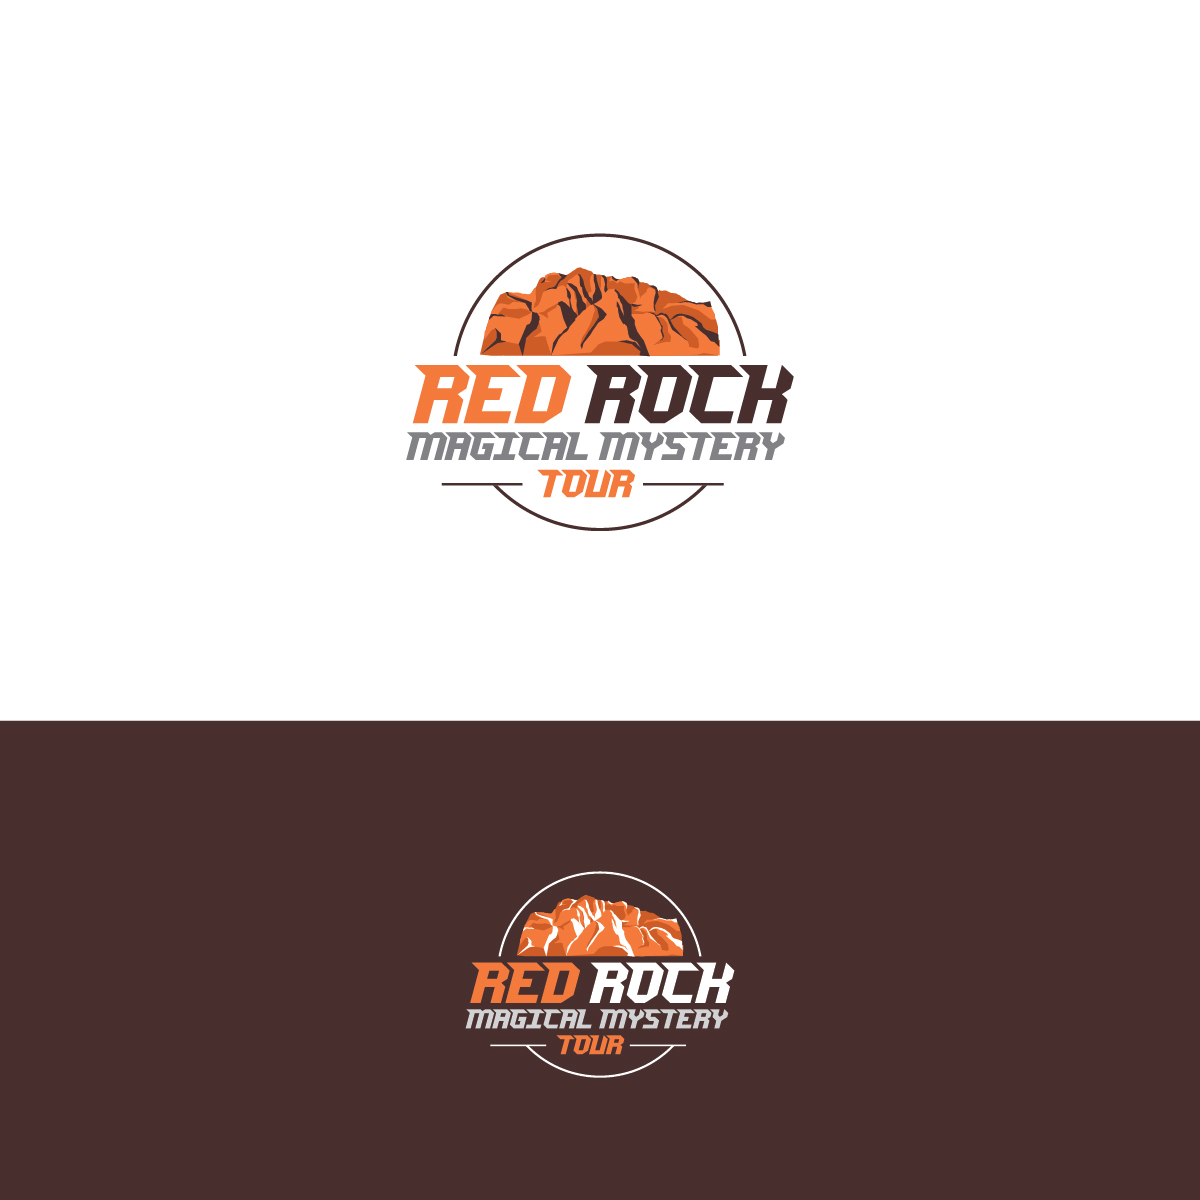 Bold, Playful, Tourism Logo Design for Red Rock Magical